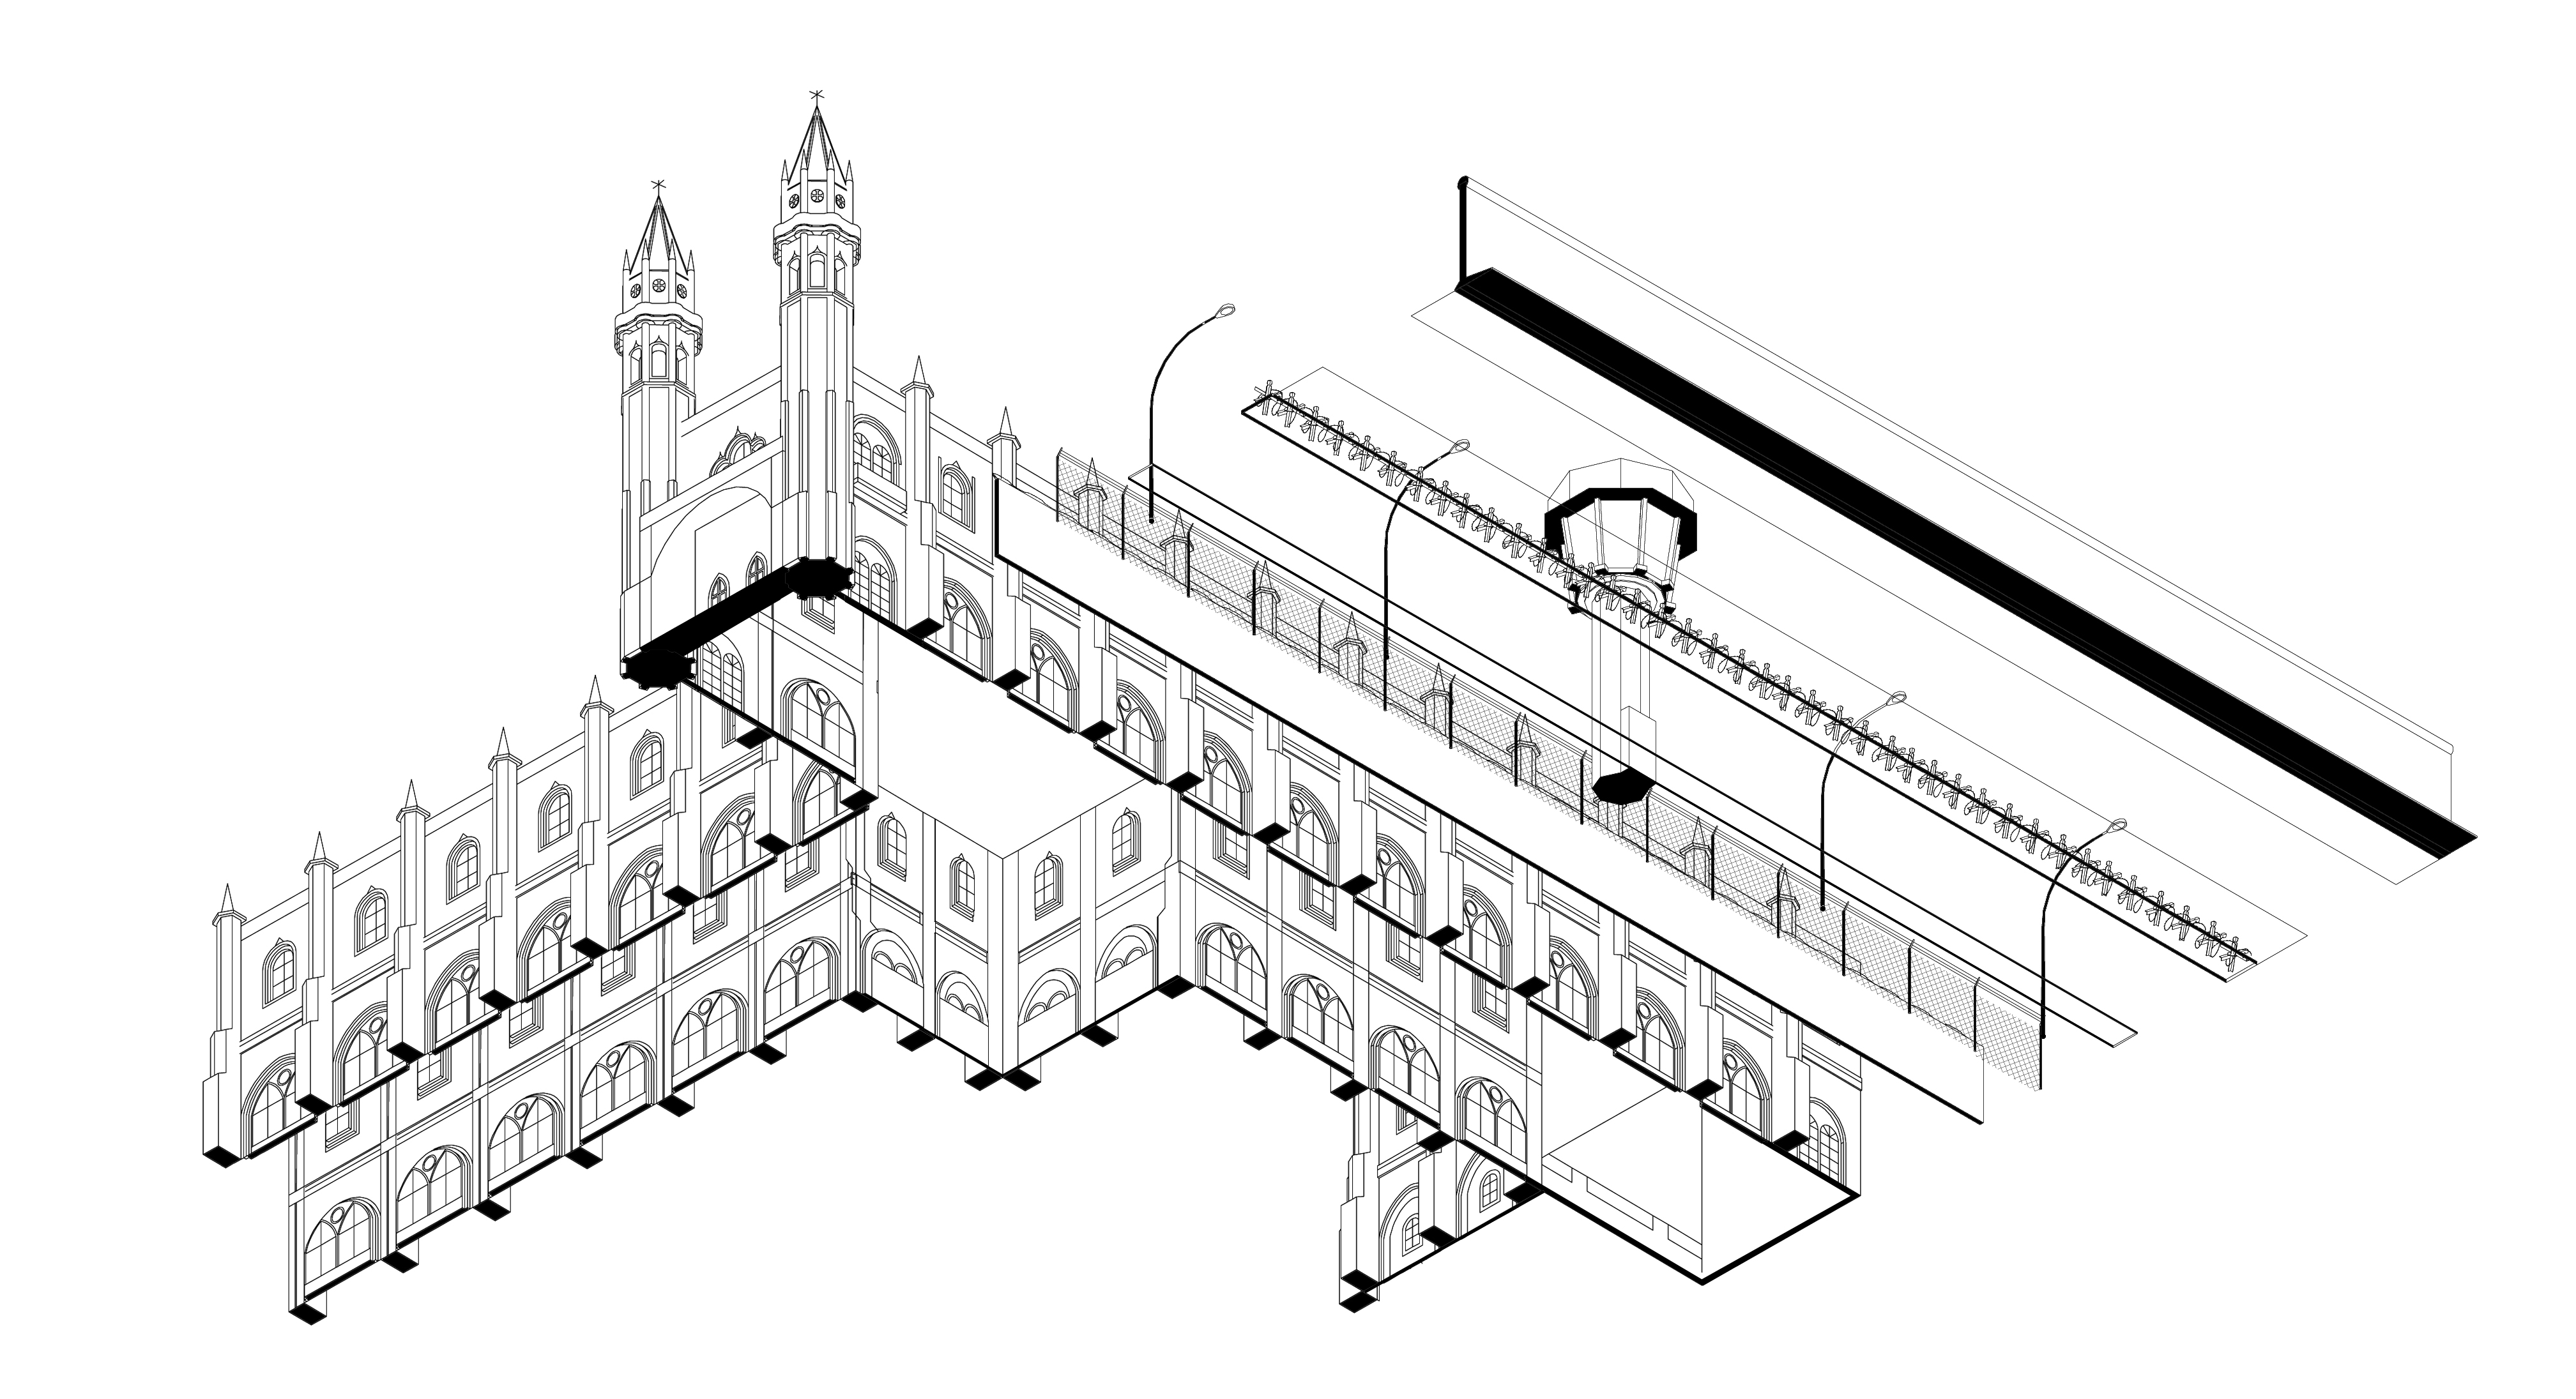 Image 01_ Axonometric View of a section of the Lisbon Wall next to Mosteiro dos Jerónimos